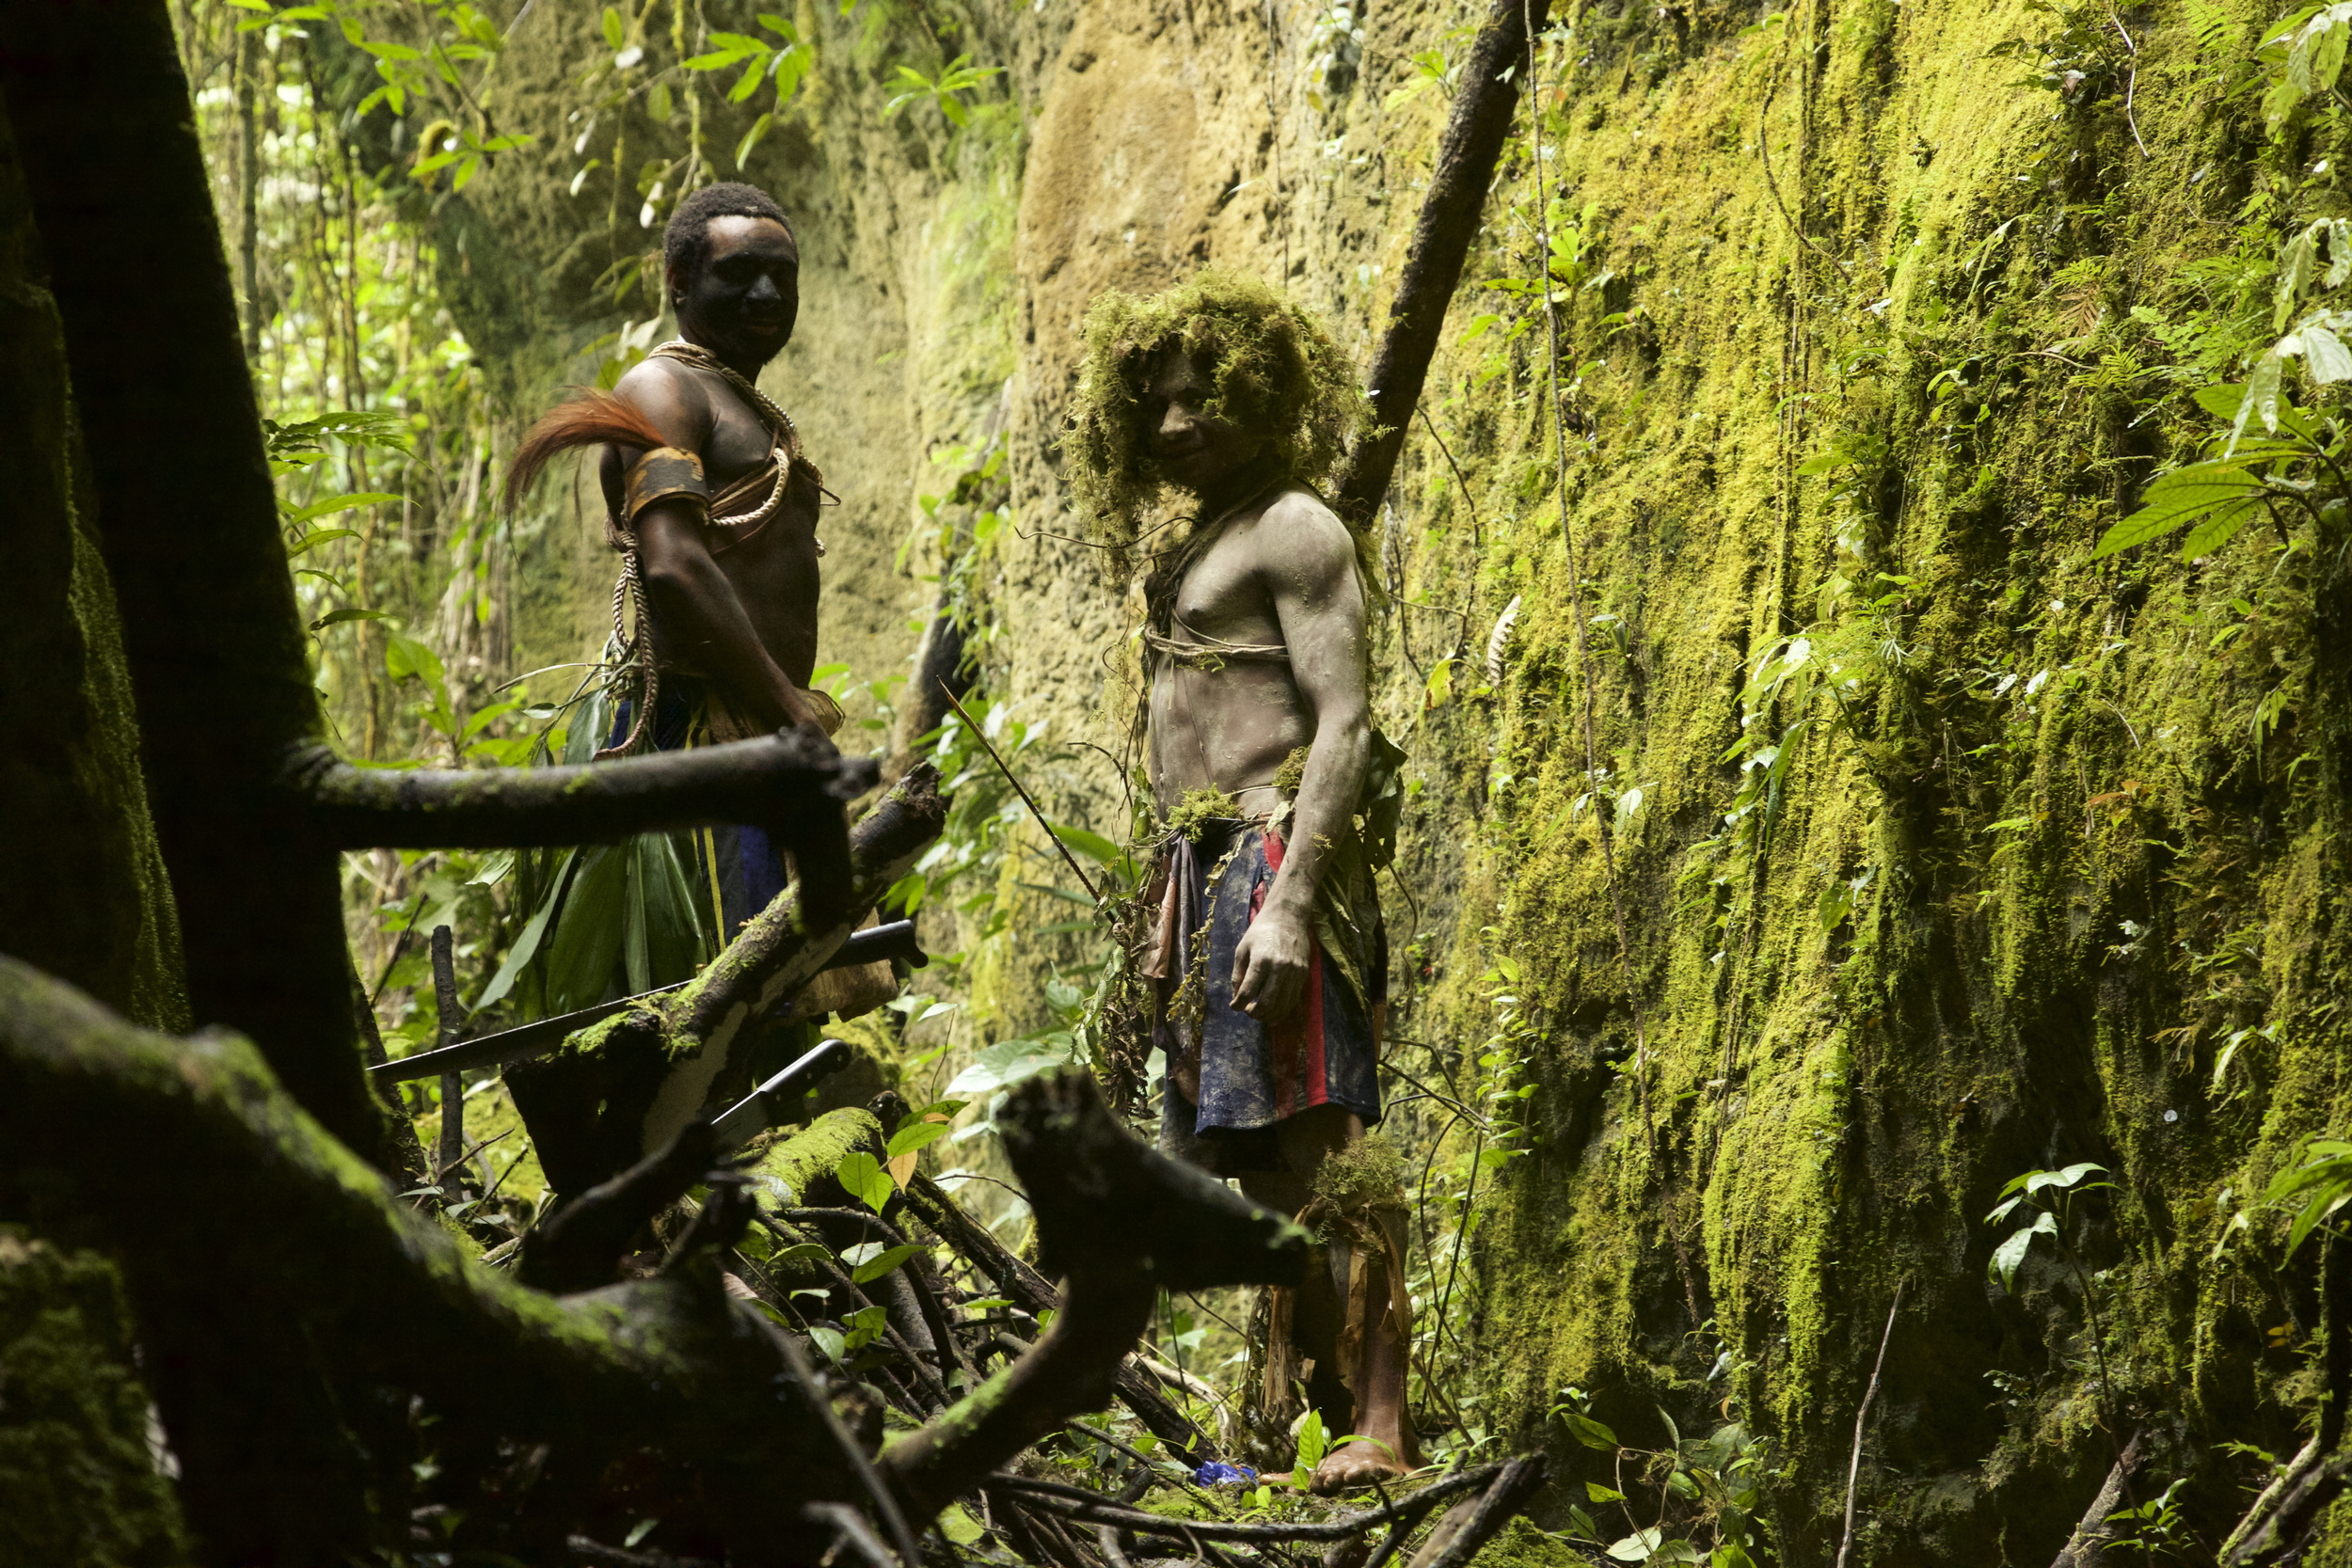 Kosua boys from Obote Cave camp putting on a show a the entrance to the cave.